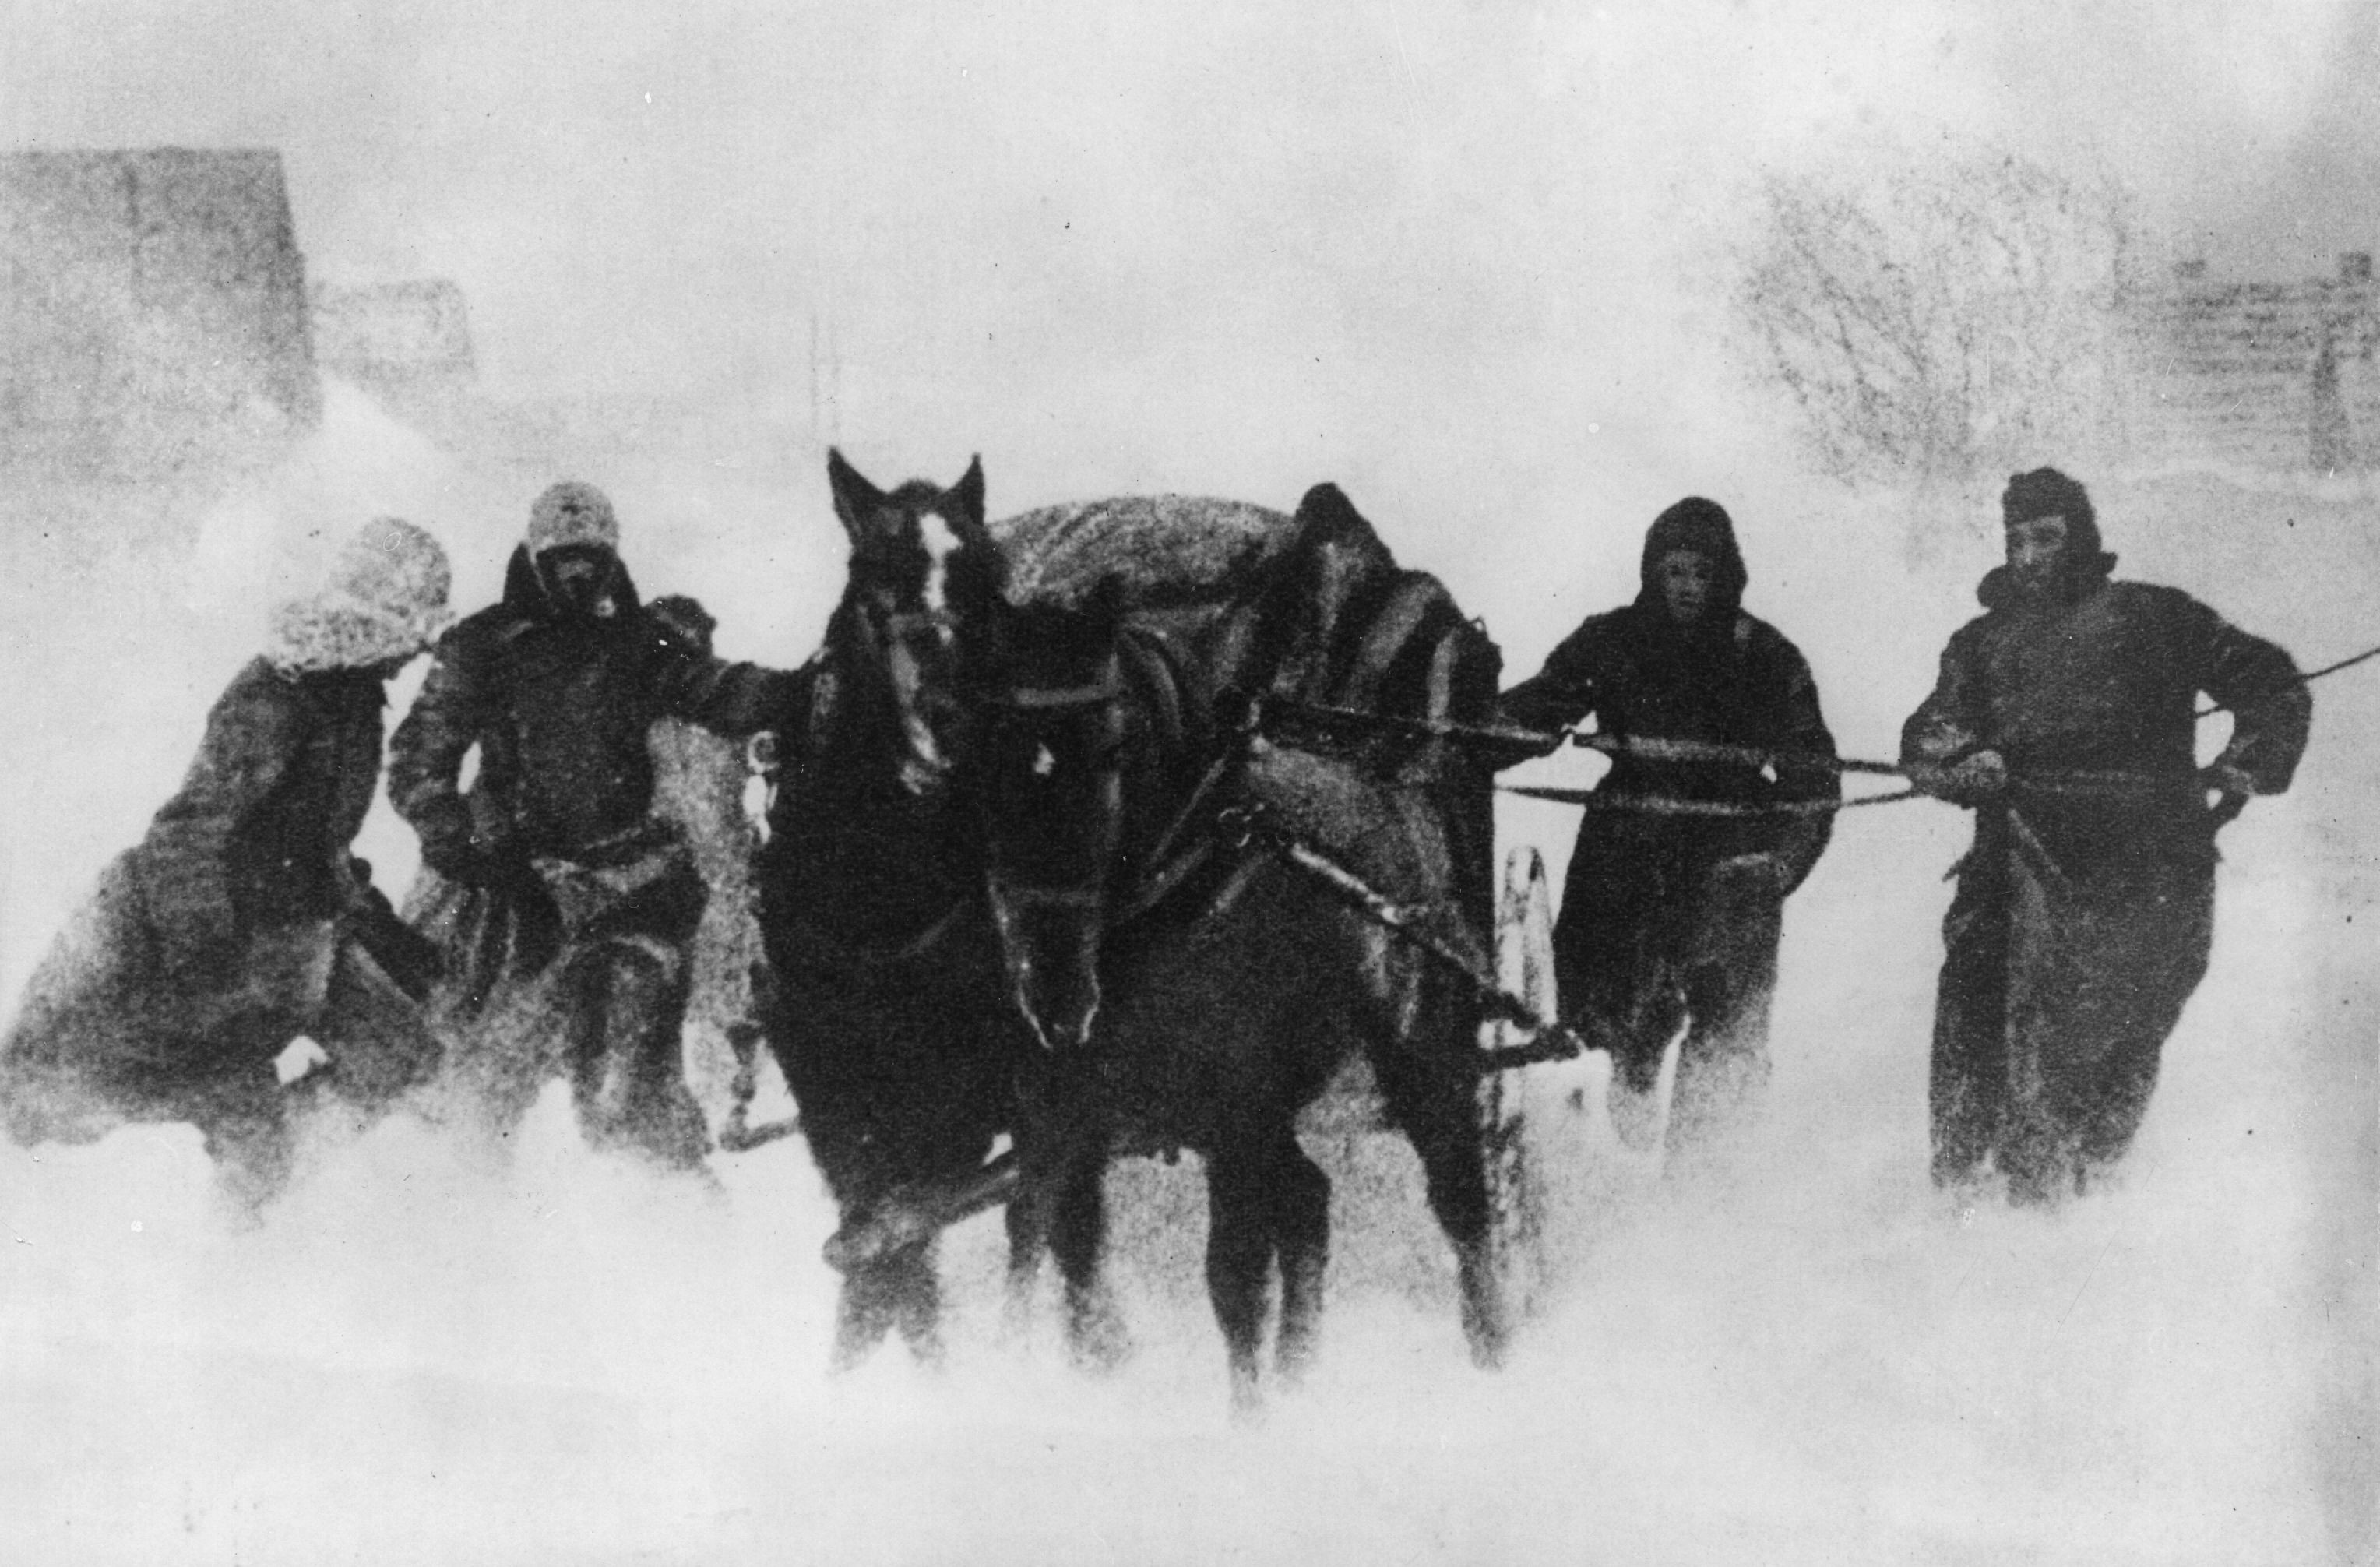 German soldiers with a horse-drawn cart during the retreat from Ukraine in 1943. The idea of Teutonic efficiency was a triumph of Nazi spin, says James Holland. (Keystone/Getty Images)